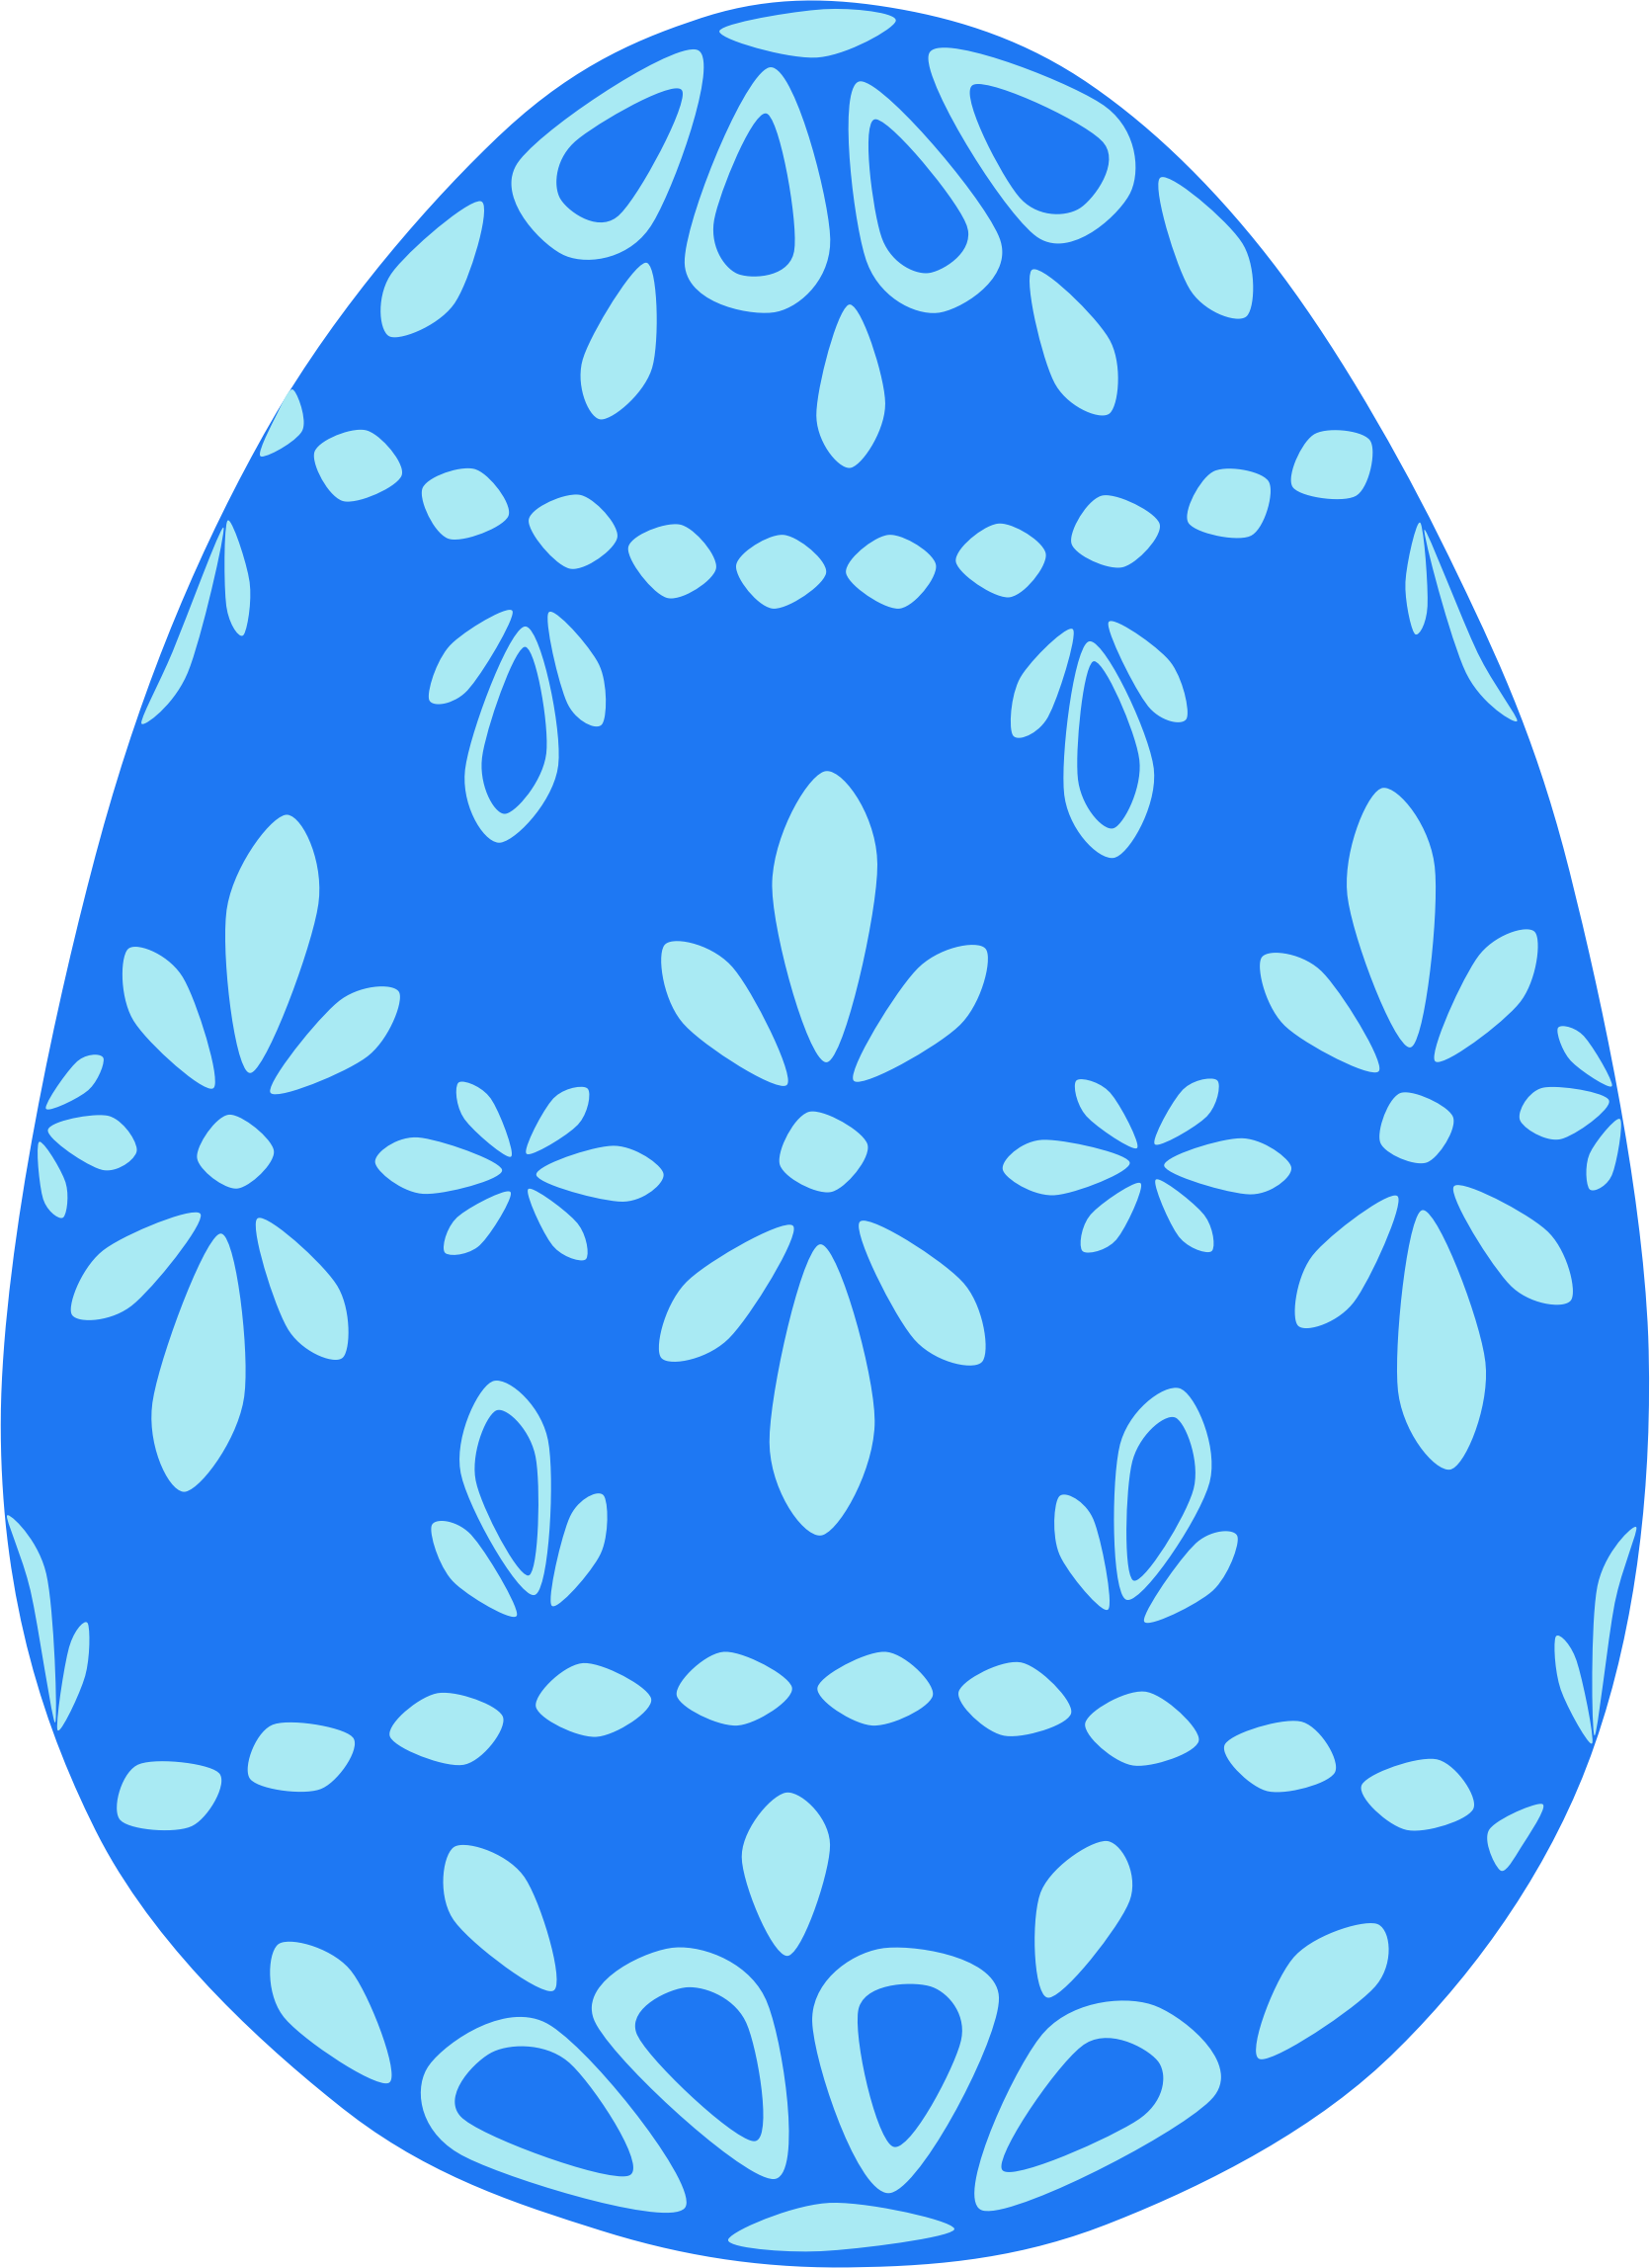 Easter egg clipart clip freeuse download Clipart - Blue Lace Easter Egg clip freeuse download